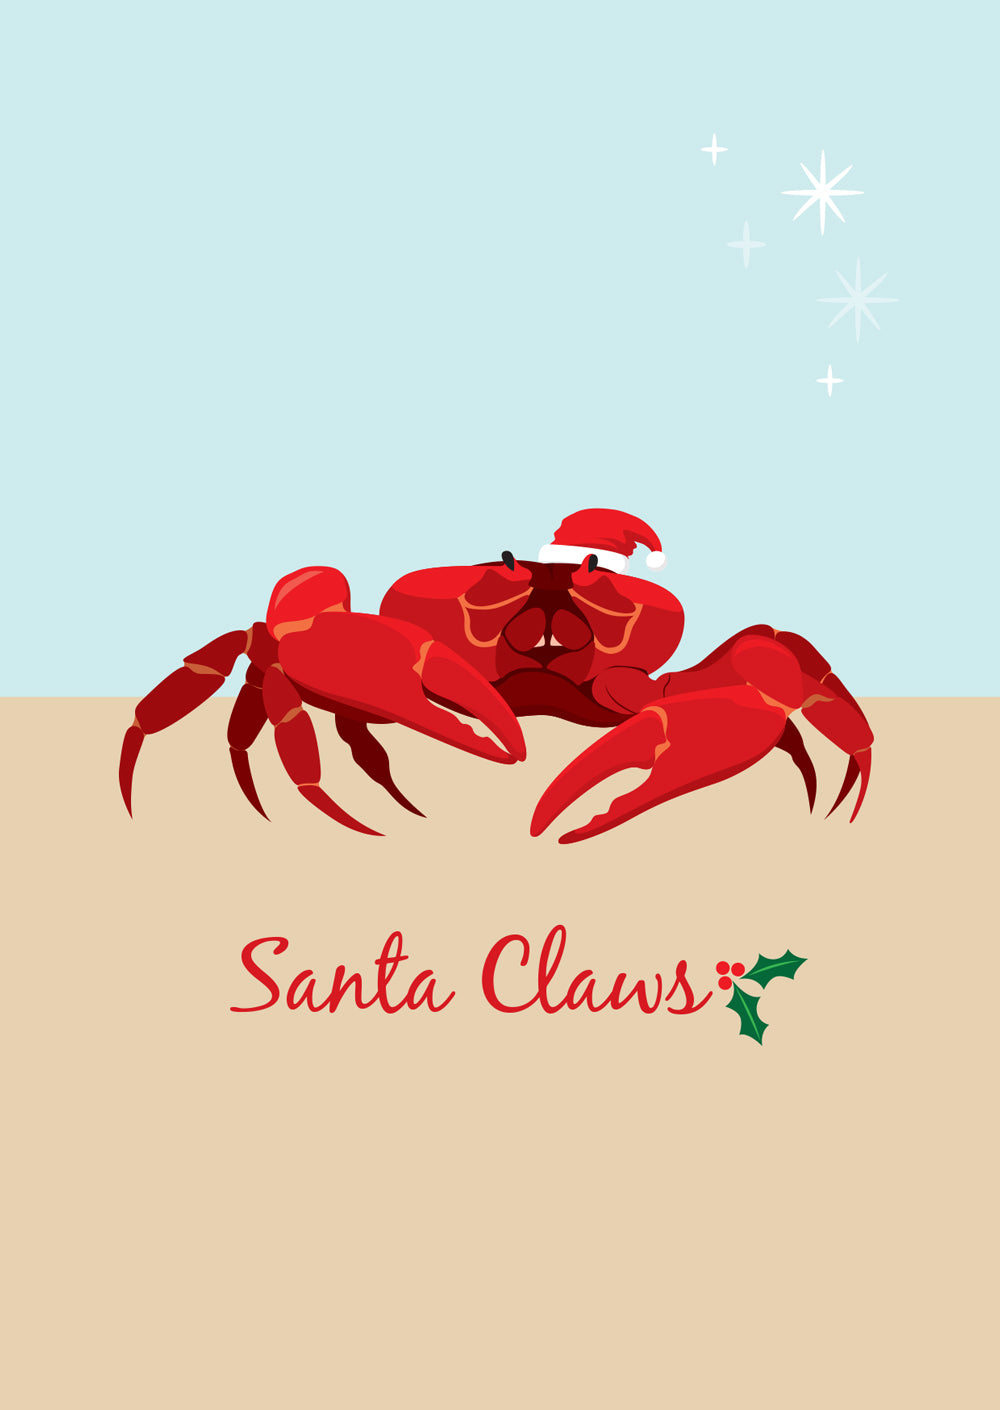 Christmas Card - Christmas Island Red Crab Santa Claws A6